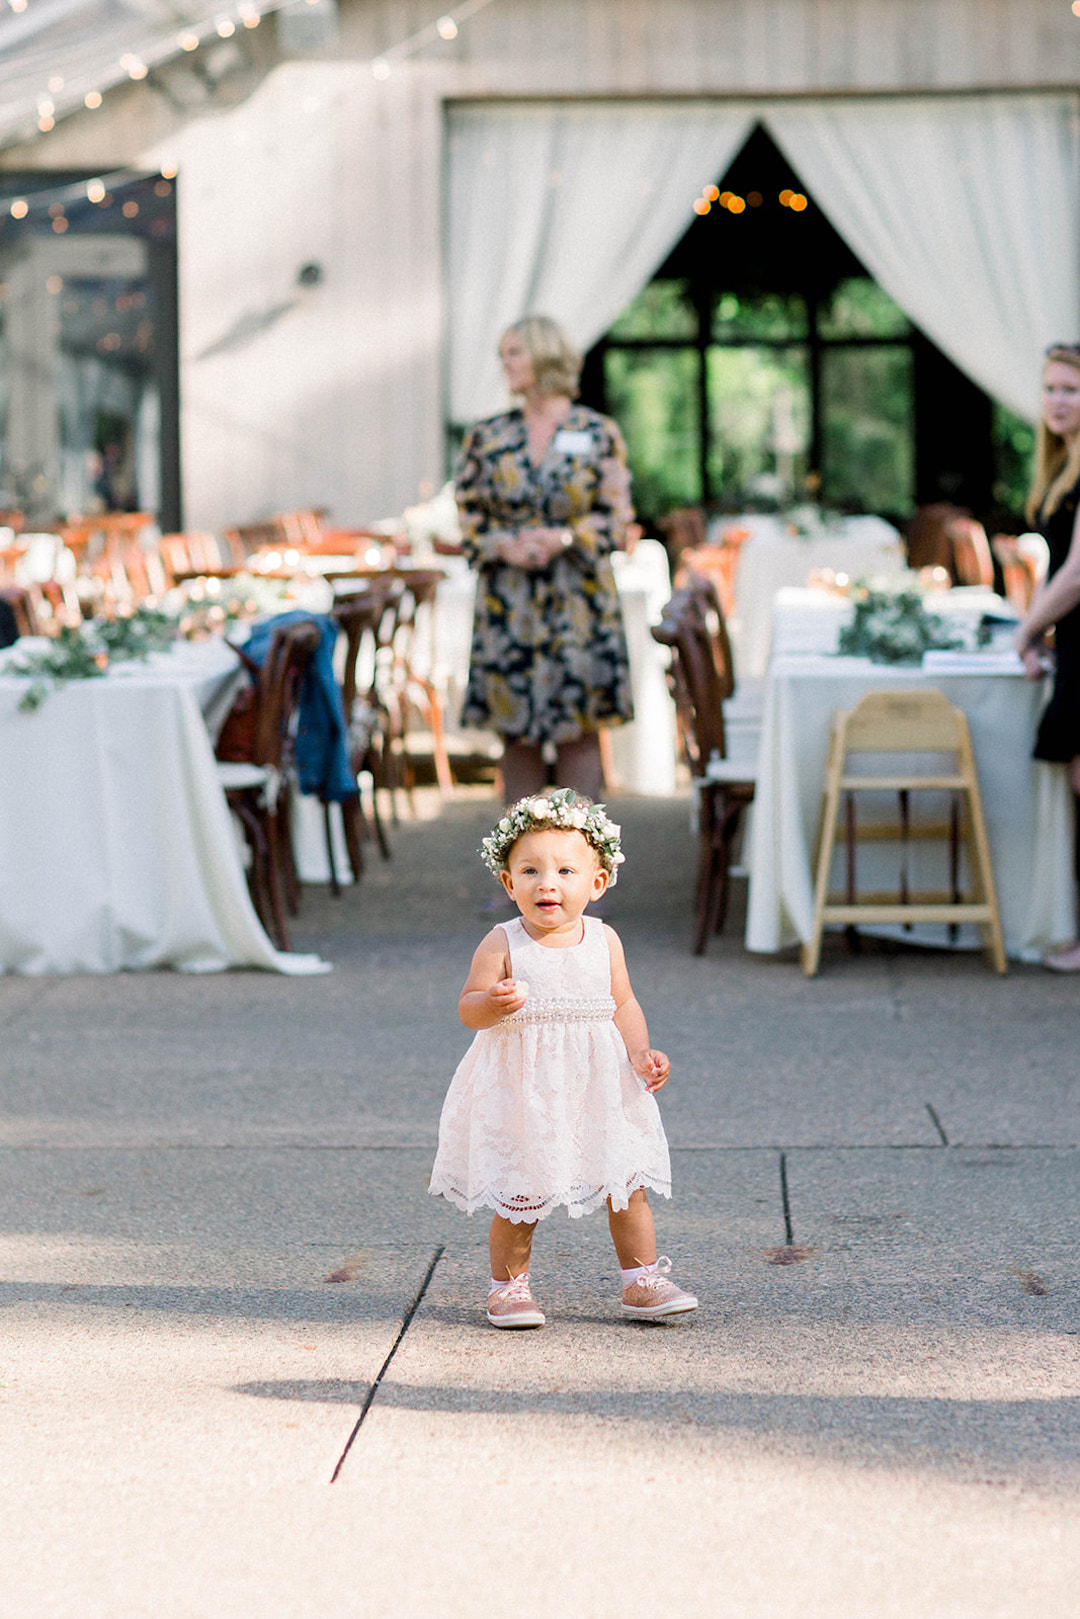 Flower girl dress ideas: Sunset wedding photos:Pittsburgh Botanic Garden wedding planned by Exhale Events. See more wedding inspiration at exhale-events.com!